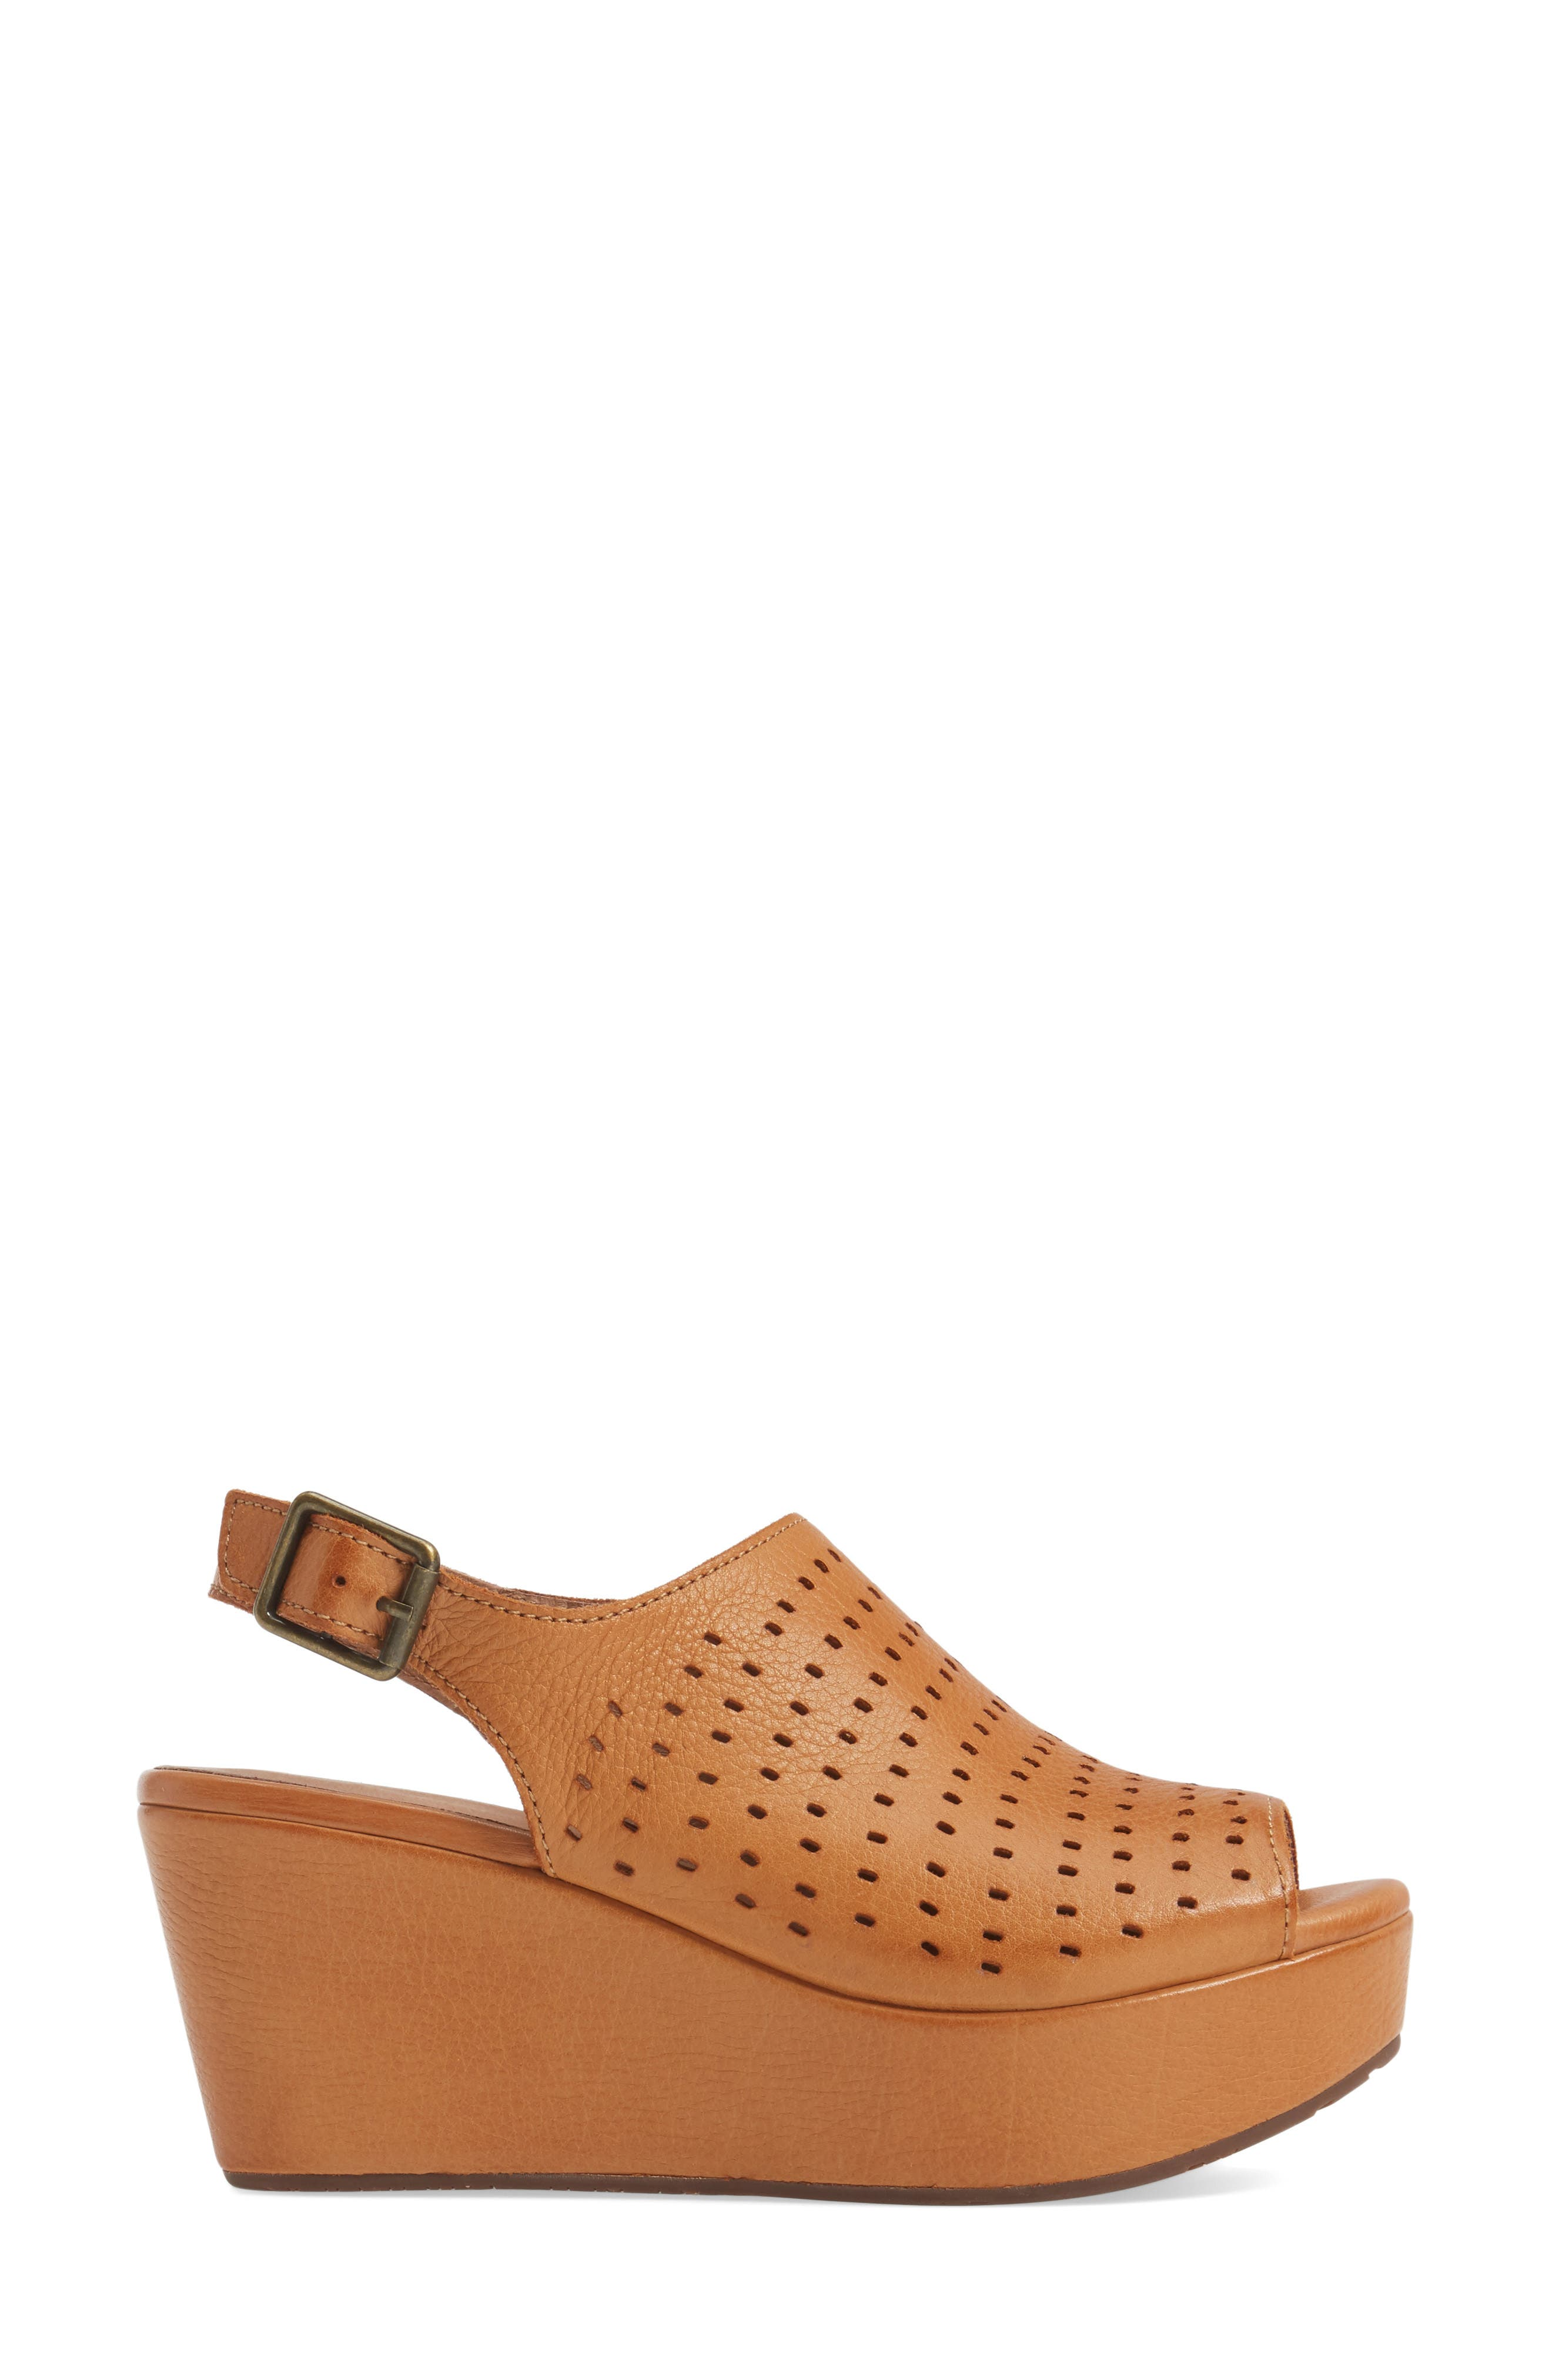 Wala Perforated Wedge Sandal,                             Alternate thumbnail 3, color,                             200